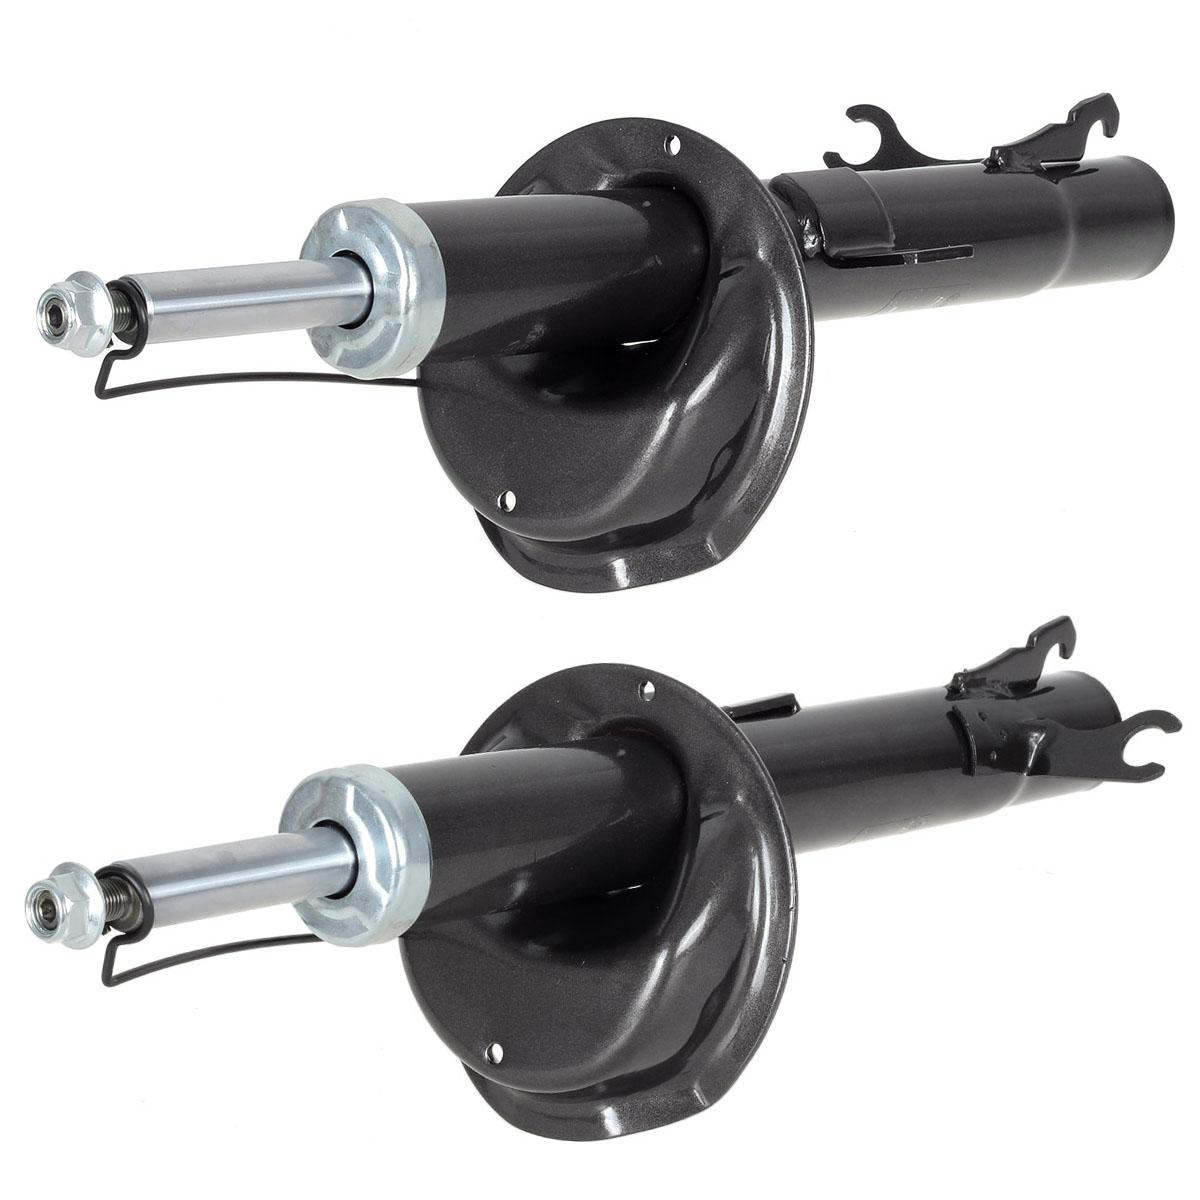 NEW Front Set Shocks Struts Fits 2000-2005 Ford Focus